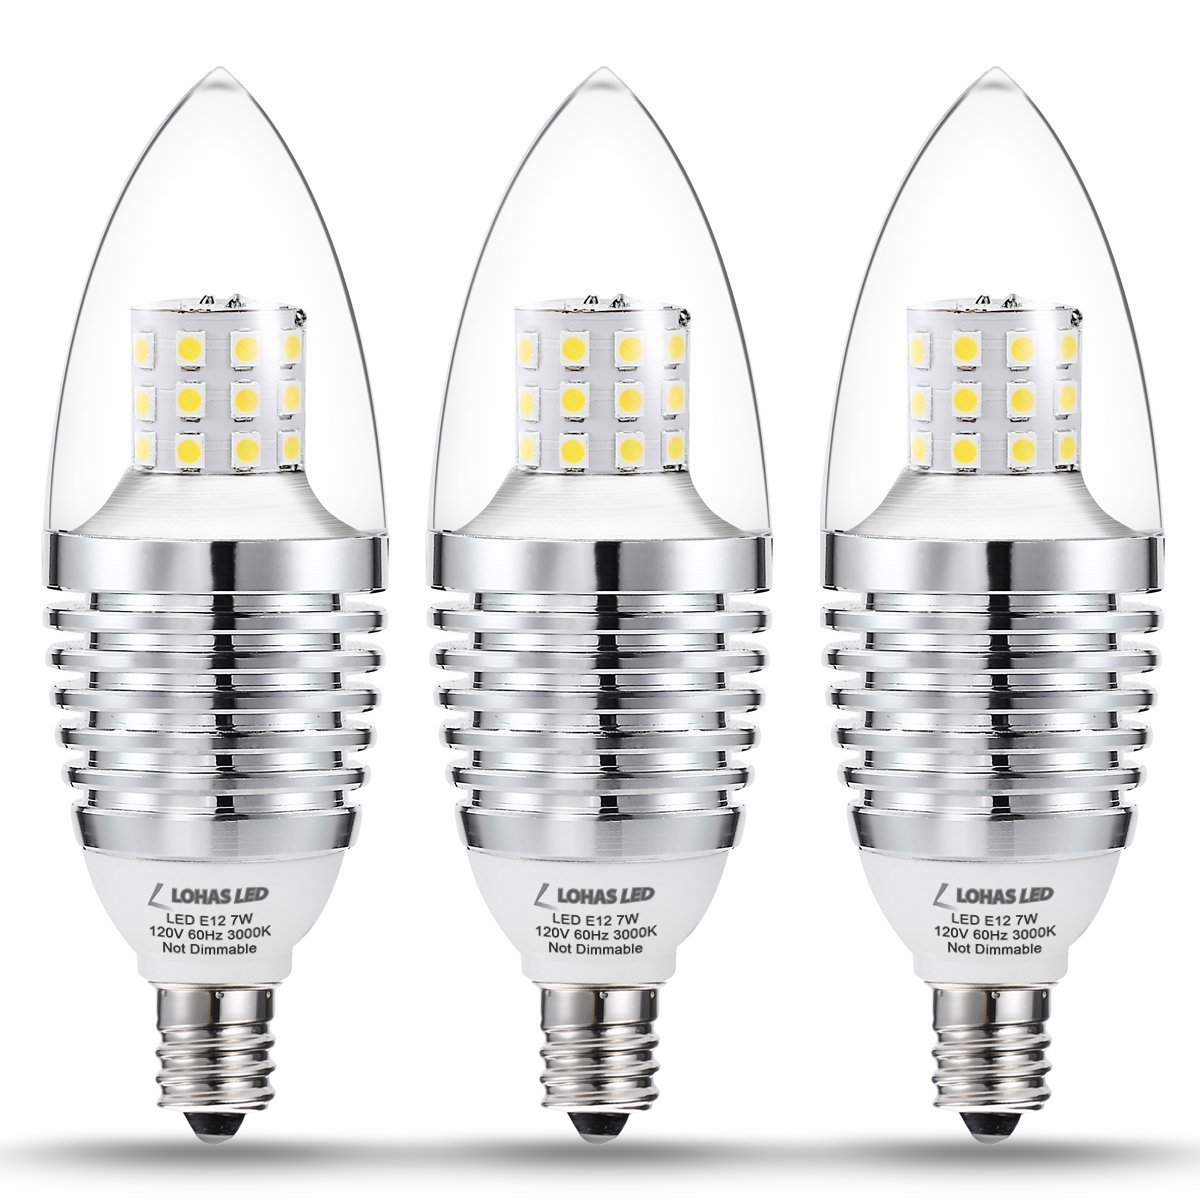 Dimmable Led Light Bulbs For Home Lighting Led Flood Lights Indoor Reviews Home Depot Led Flood